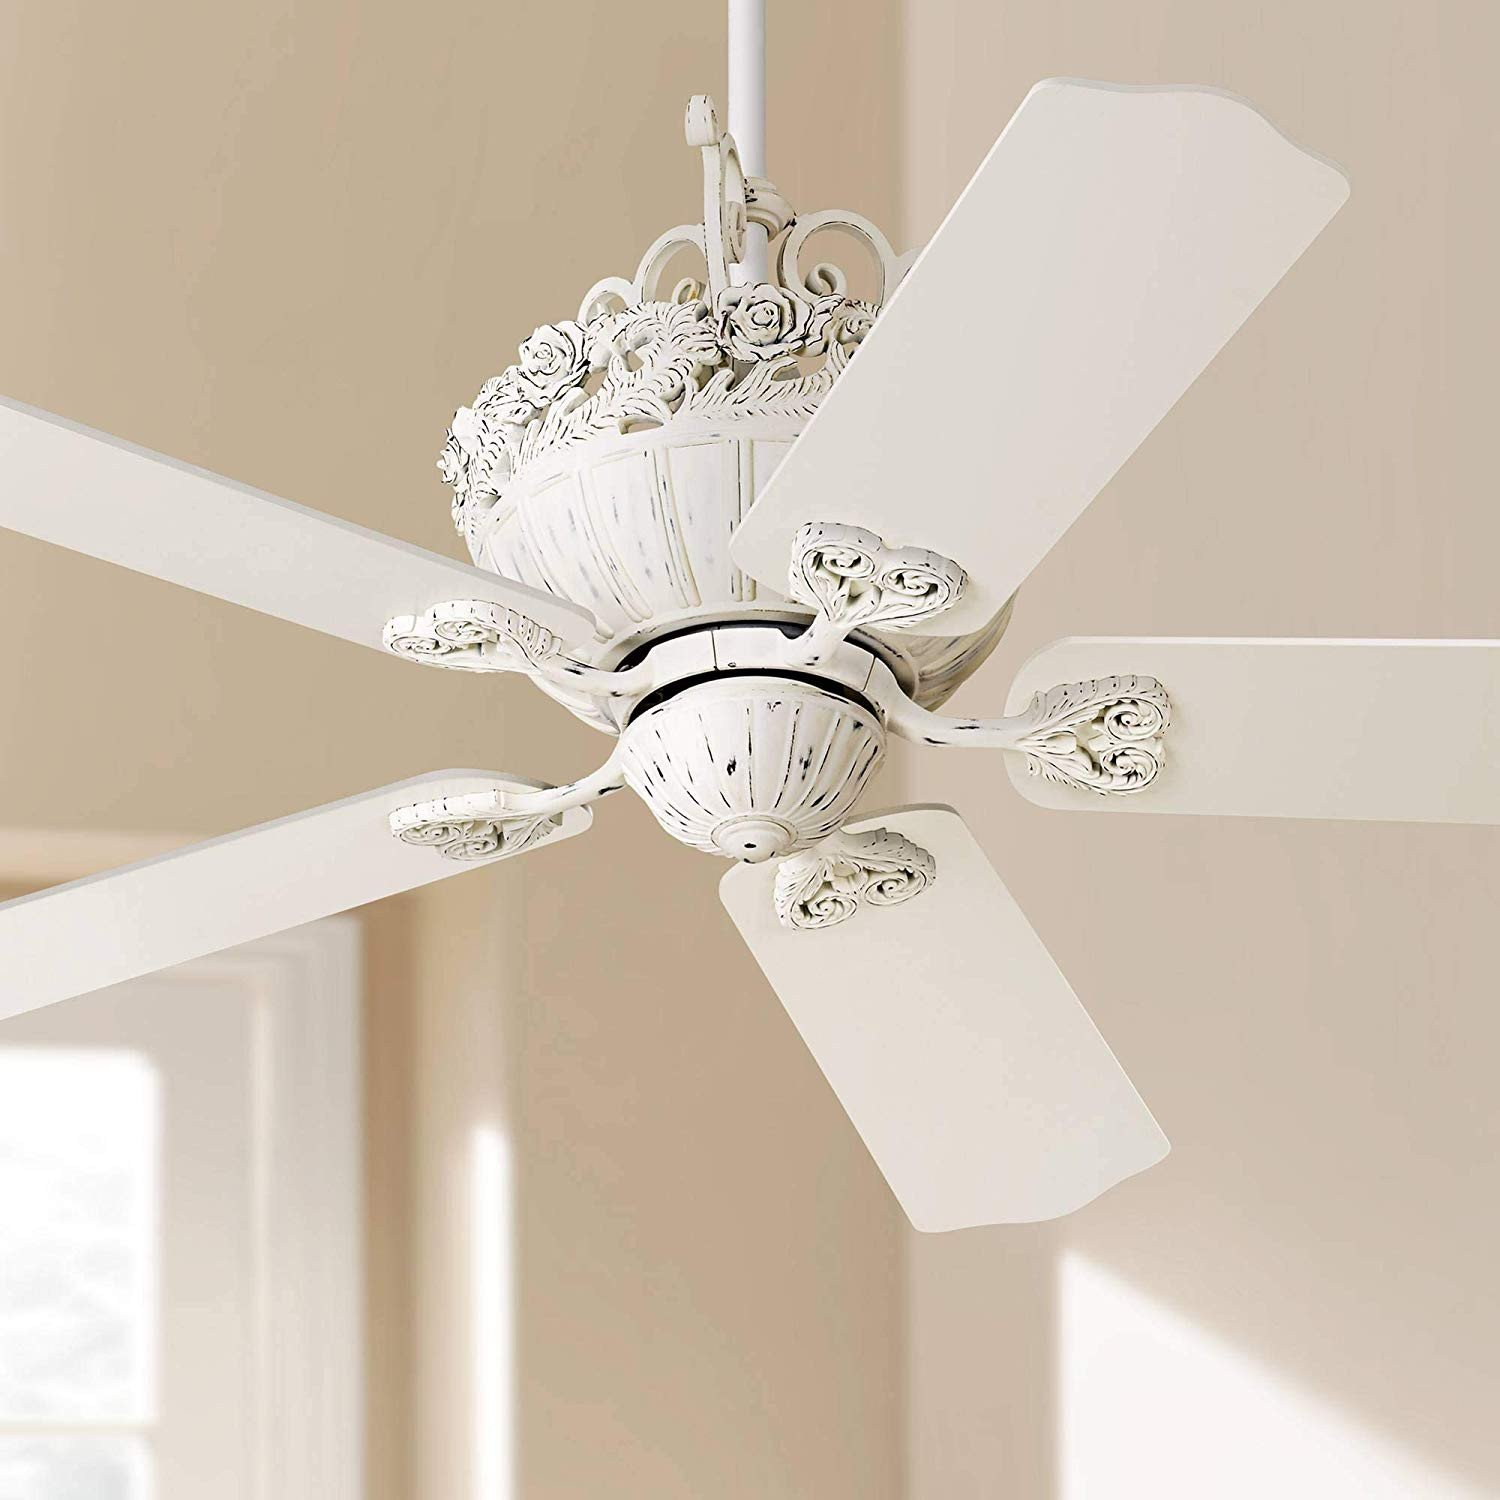 "Ceiling Fans for Girl Bedroom Beautiful 52"" Casa Shabby Chic Ceiling Fan Antique Floral Scroll Rubbed White for Living Room Kitchen Bedroom Family Dining Casa Vieja"